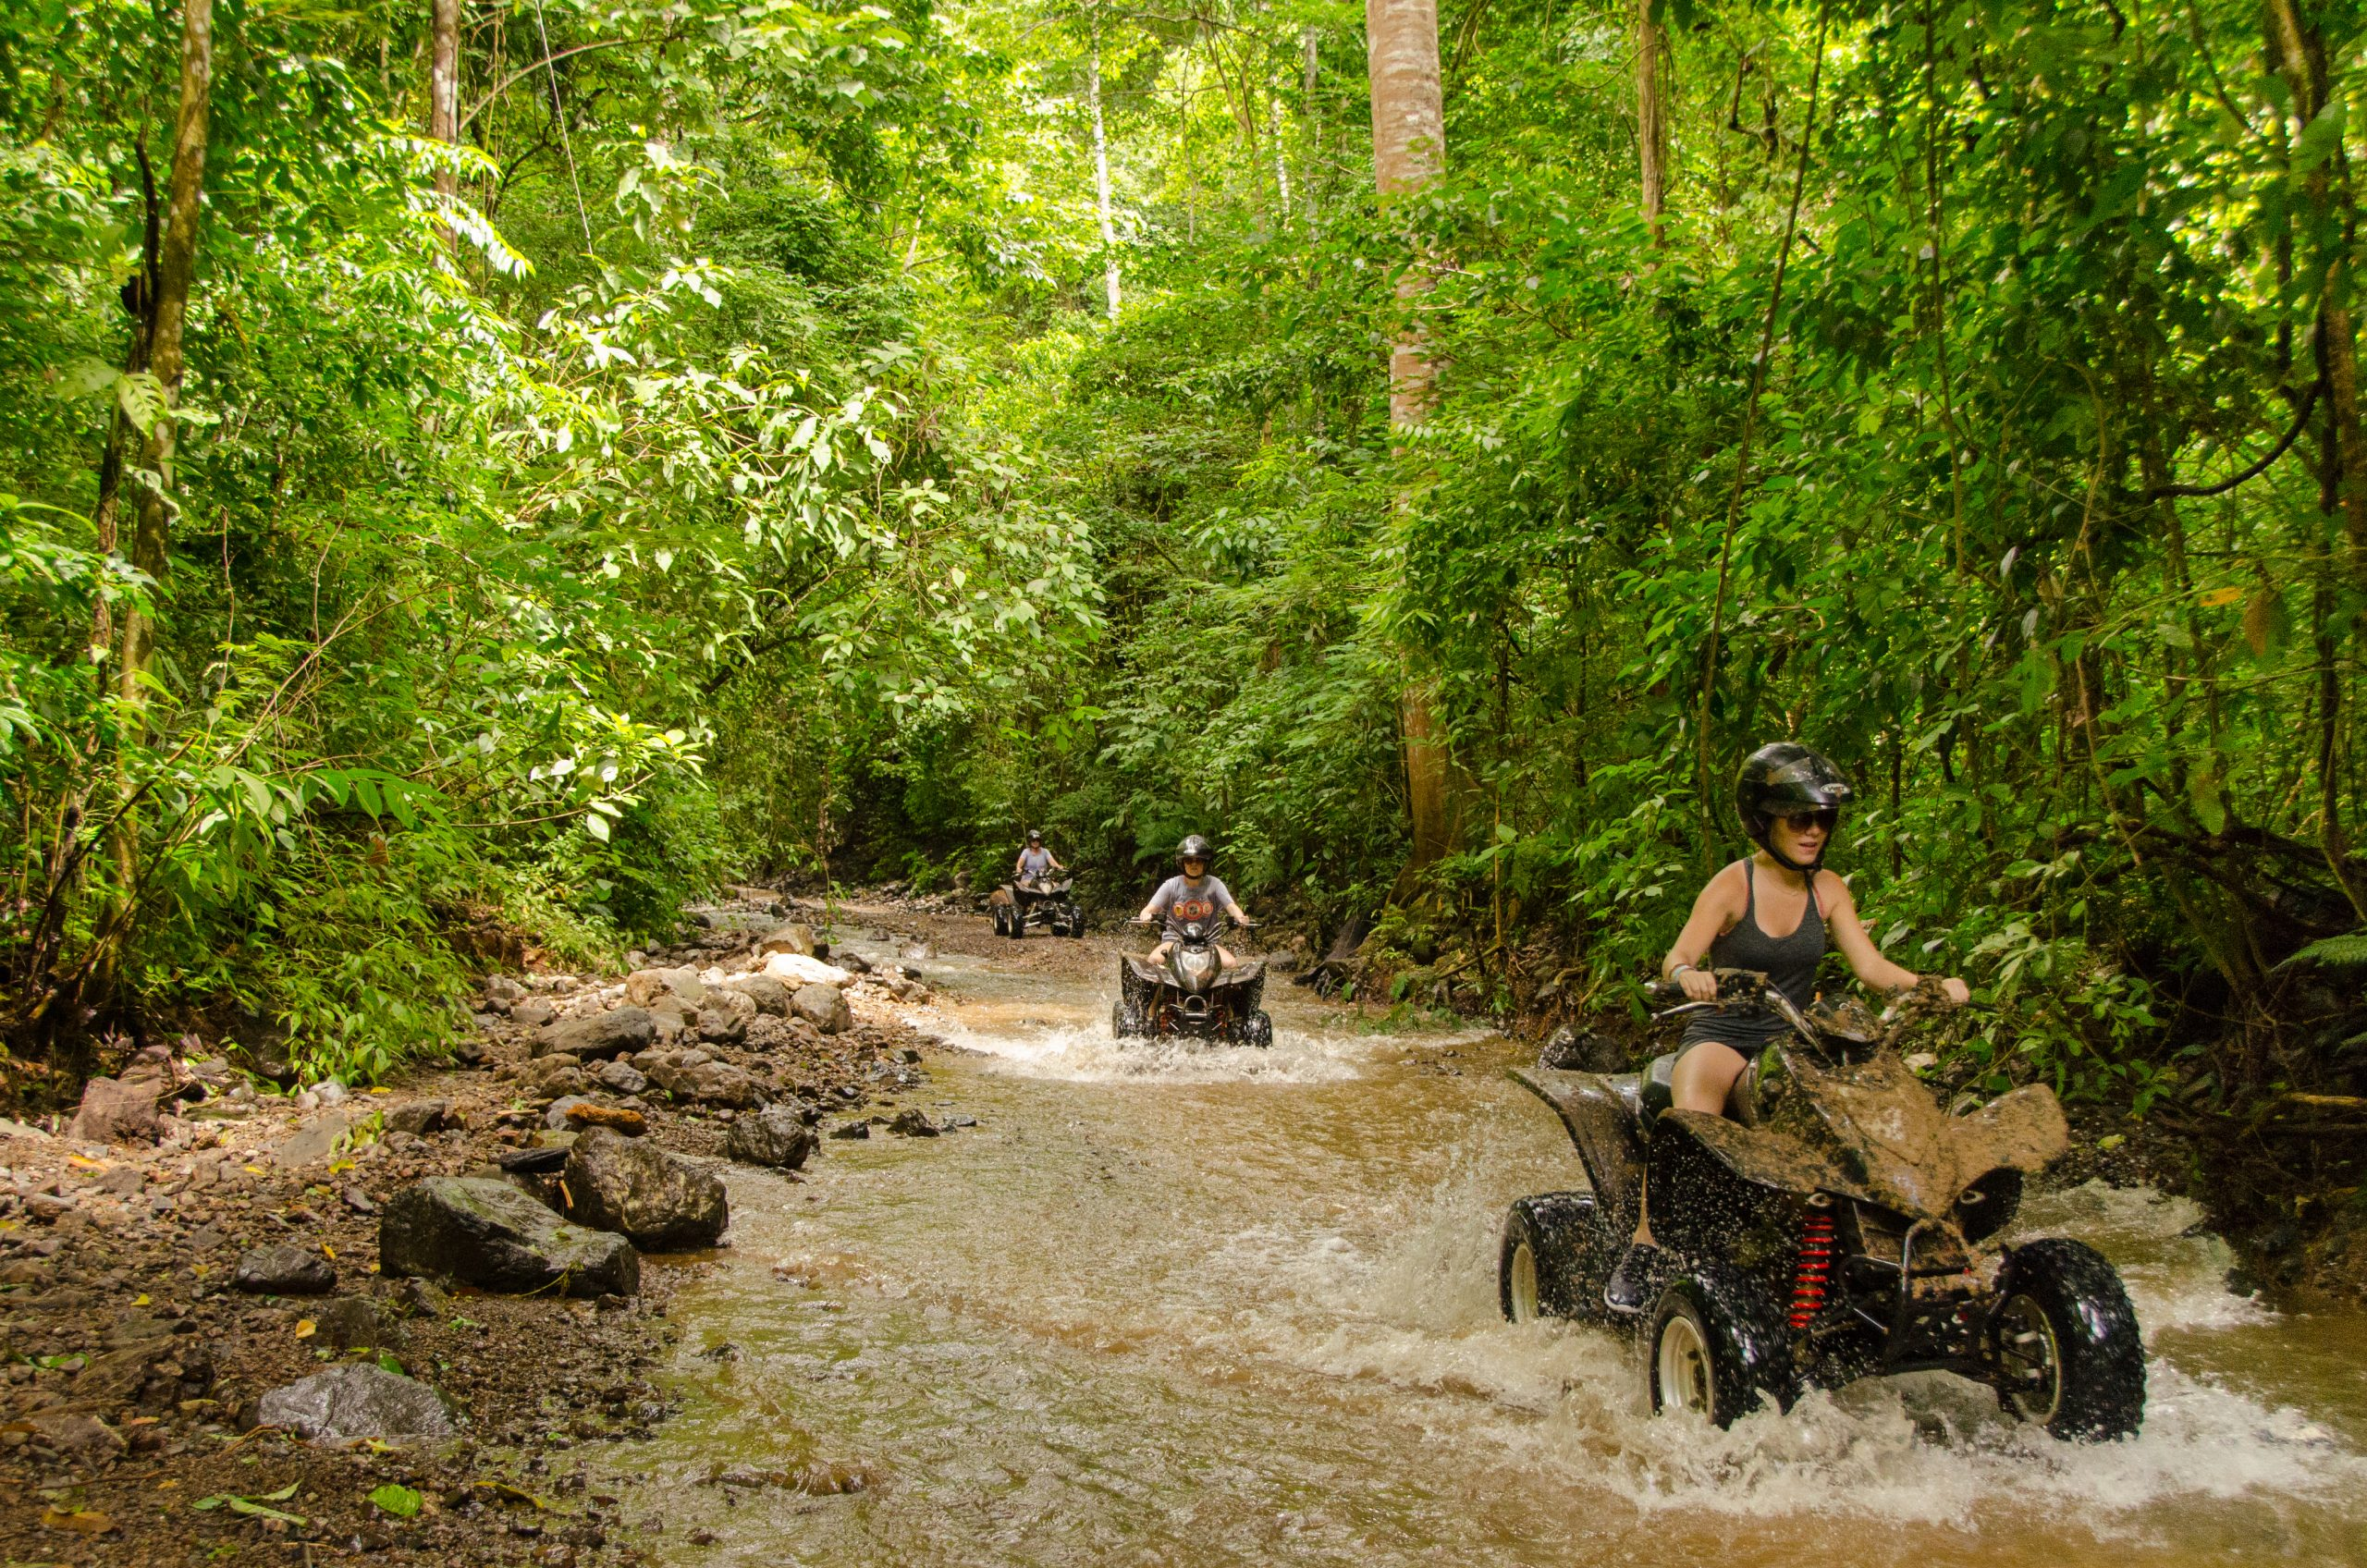 Atv Fun At The Zipline, Atv, And Waterfalls Experience From Vista Los Suenos Aventure Park_36